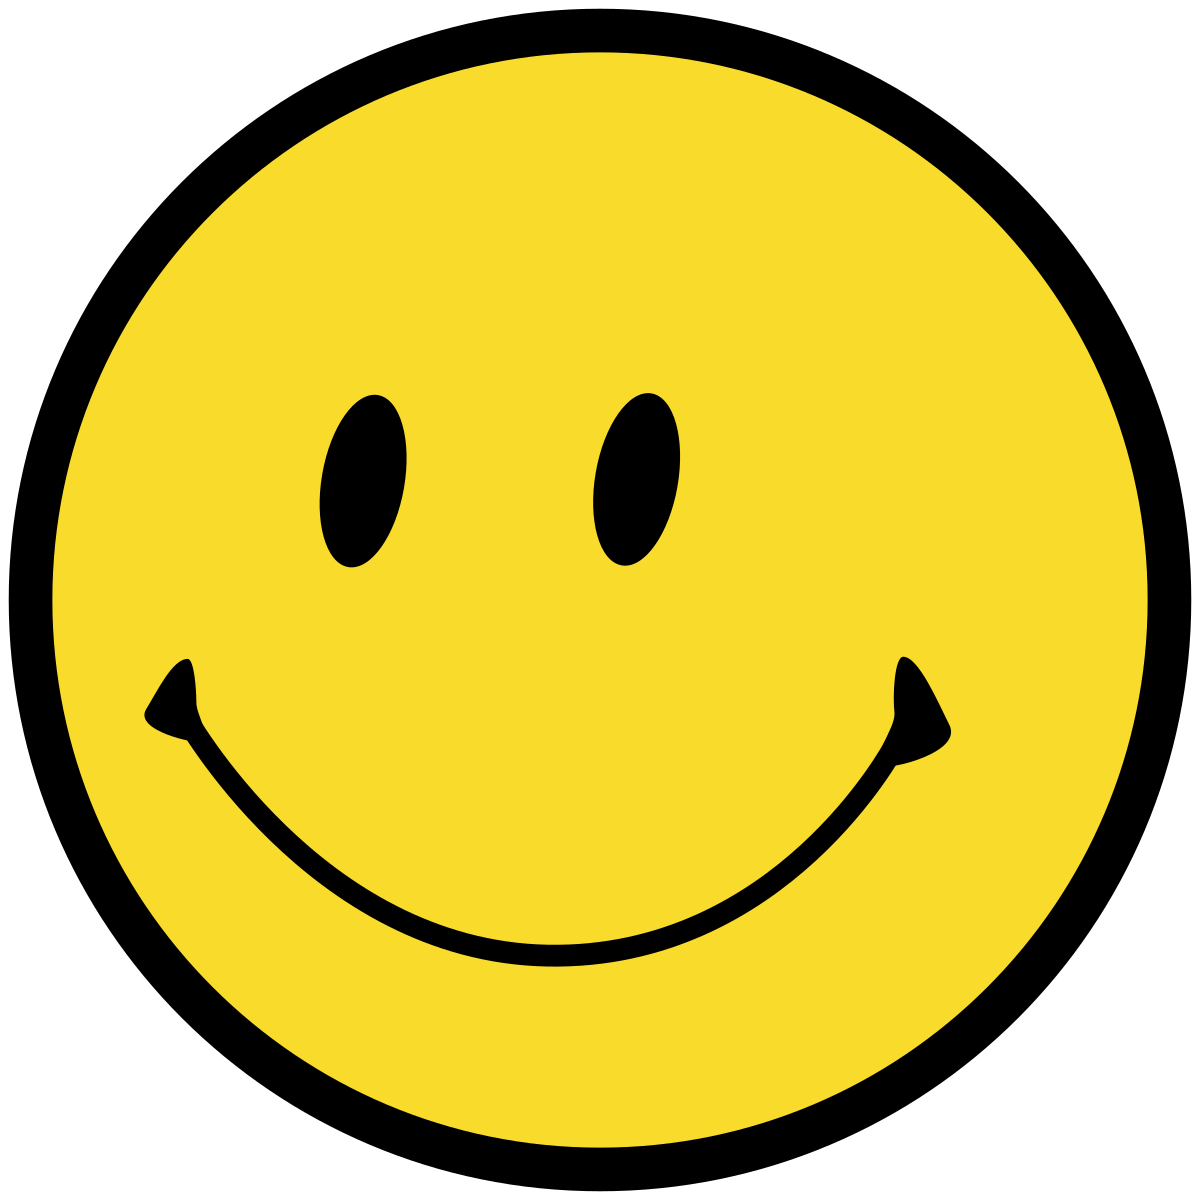 Windy clipart emoji. Image result for smiley